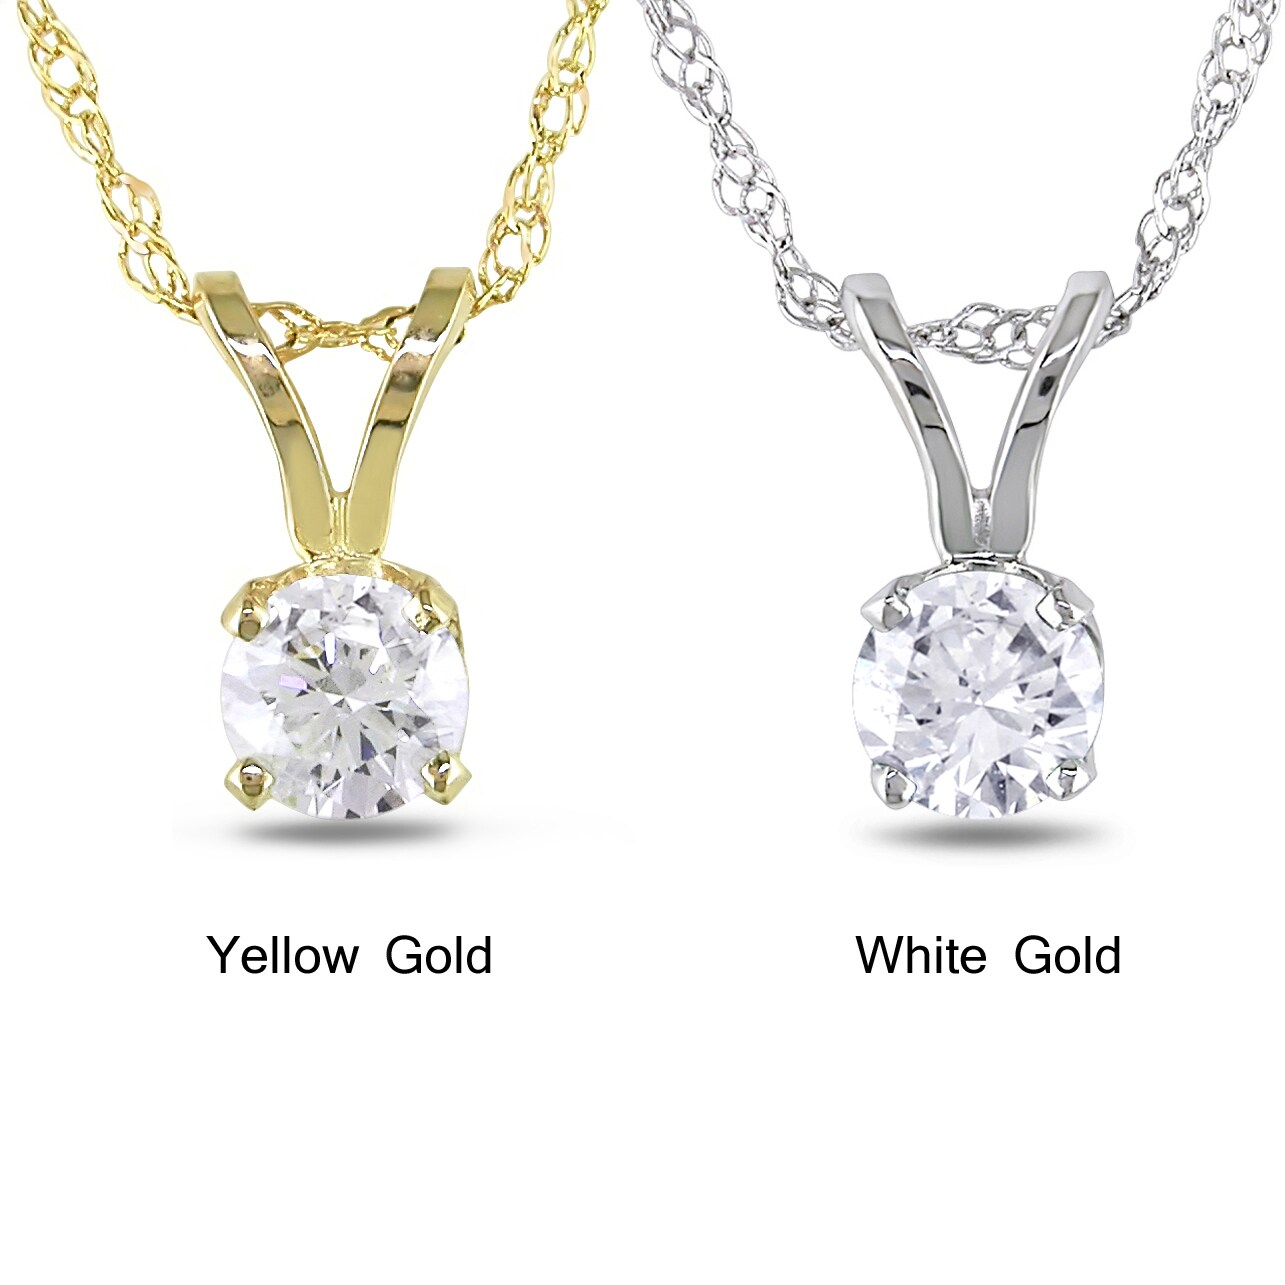 Miadora 14k gold 1 10ct 1ct tdw diamond solitaire necklace g h miadora 14k gold 1 10ct 1ct tdw diamond solitaire necklace g h i1 i2 free shipping today overstock 918991 aloadofball Image collections